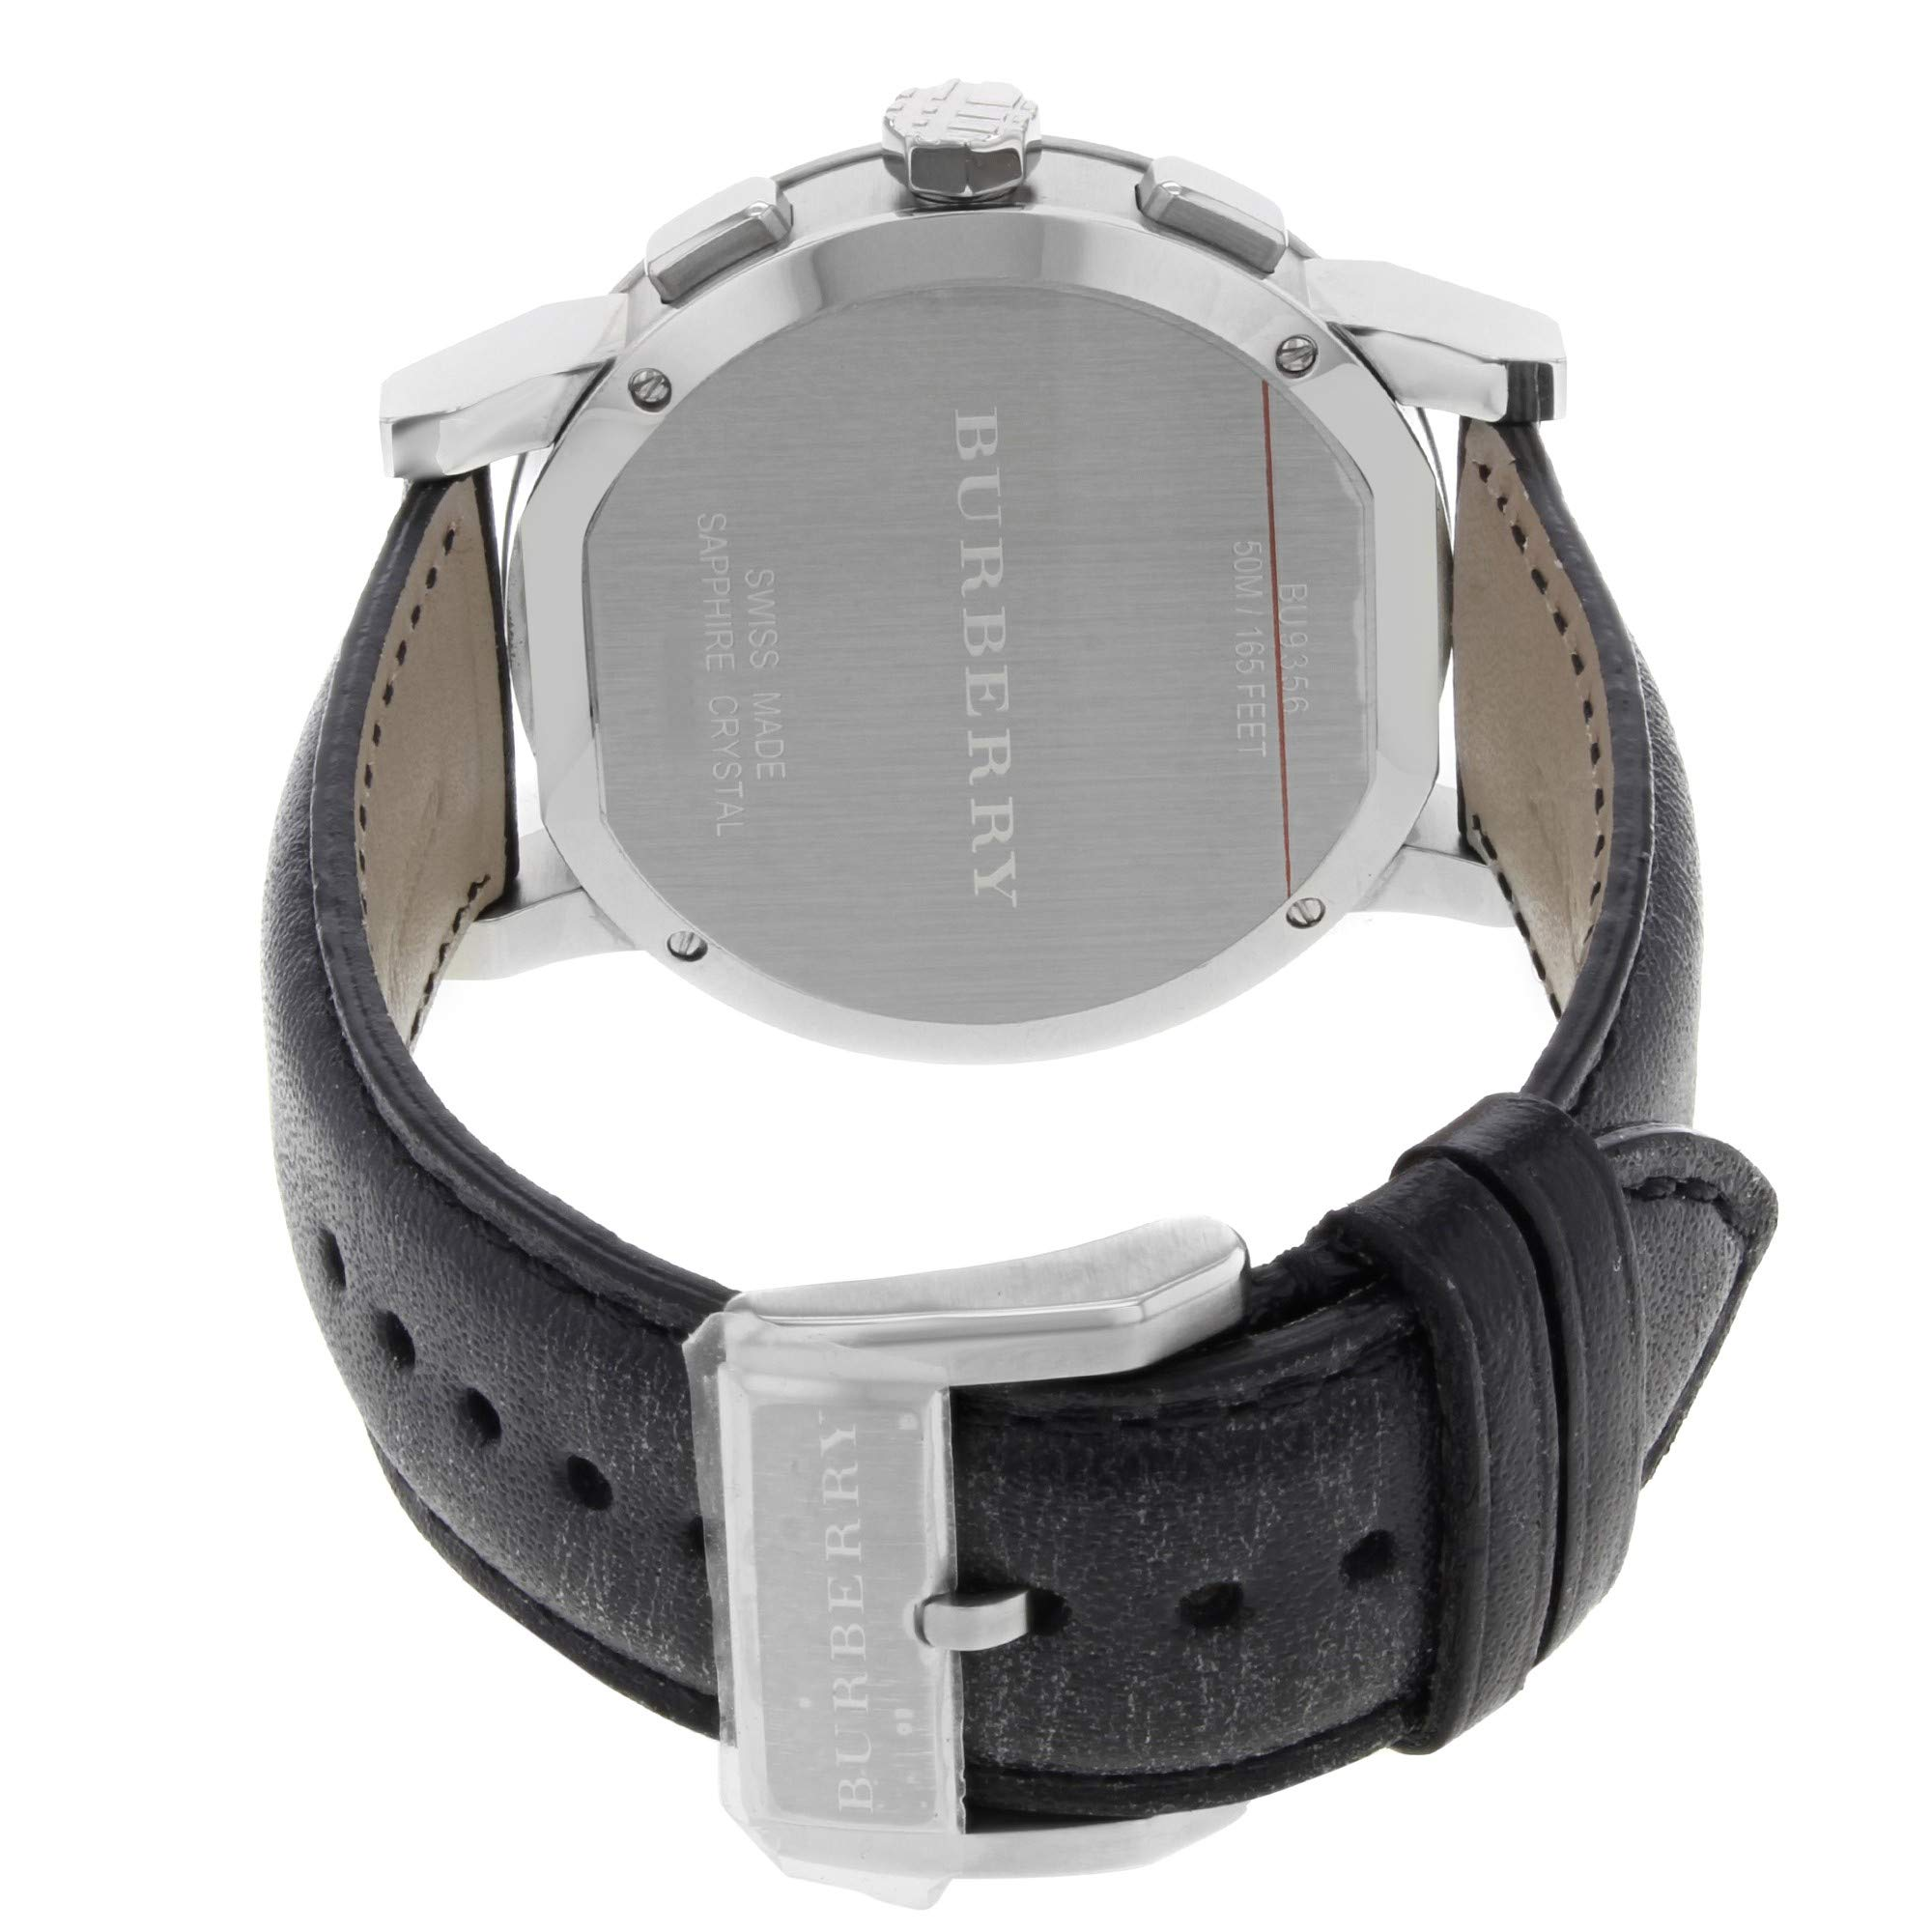 Burberry The City Quartz Male Watch BU9356 (Certified Pre-Owned) by BURBERRY (Image #2)